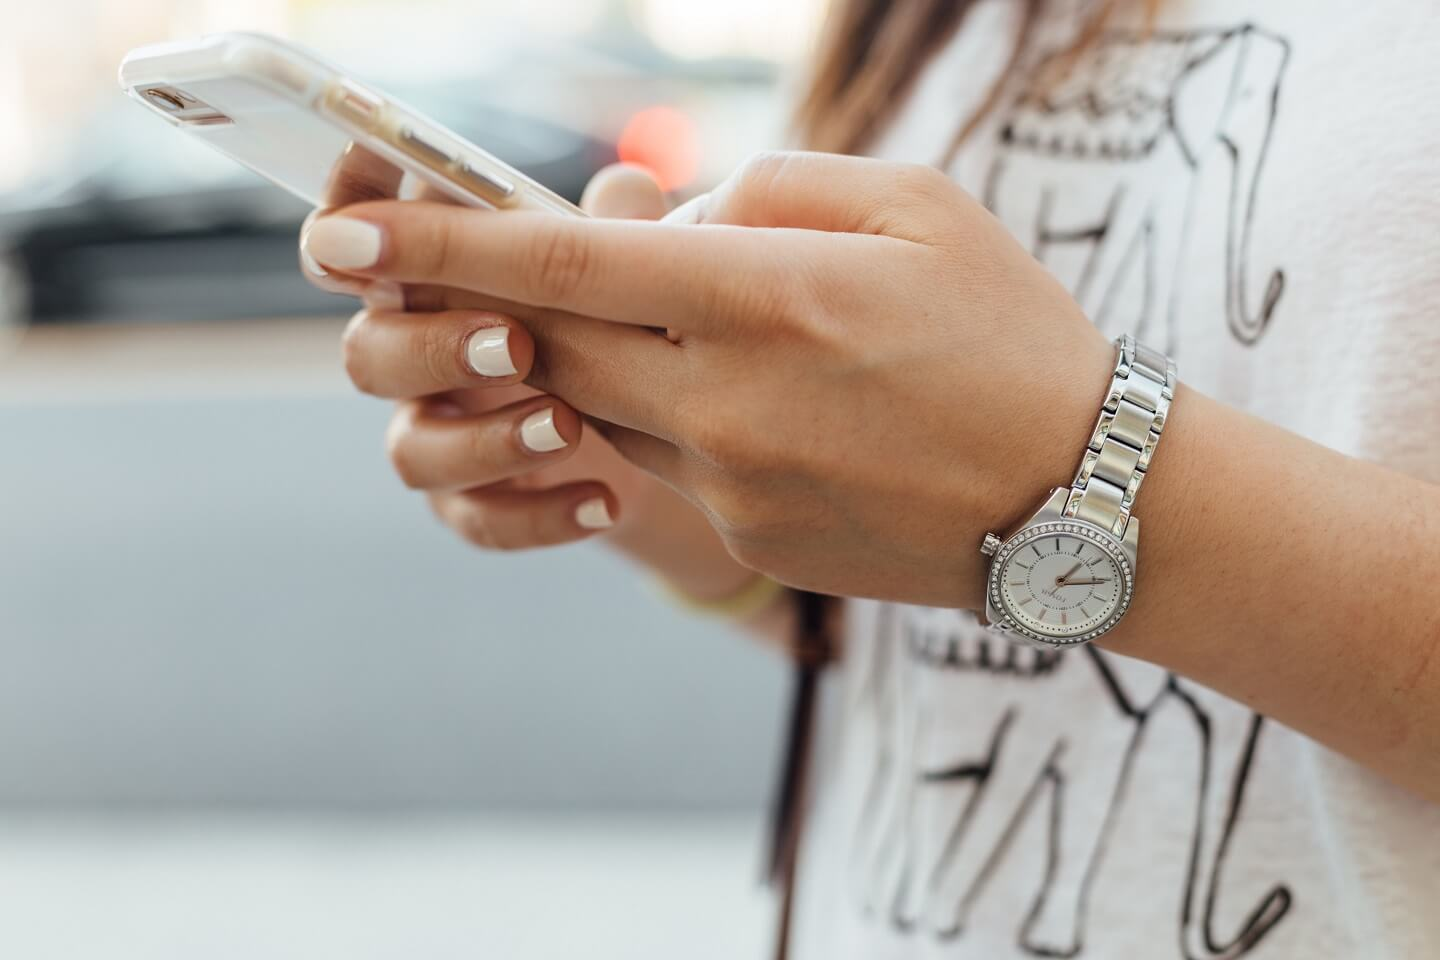 Woman with a silver watch and white tshirt is holding her iPhone in both hands, looking at the screen.